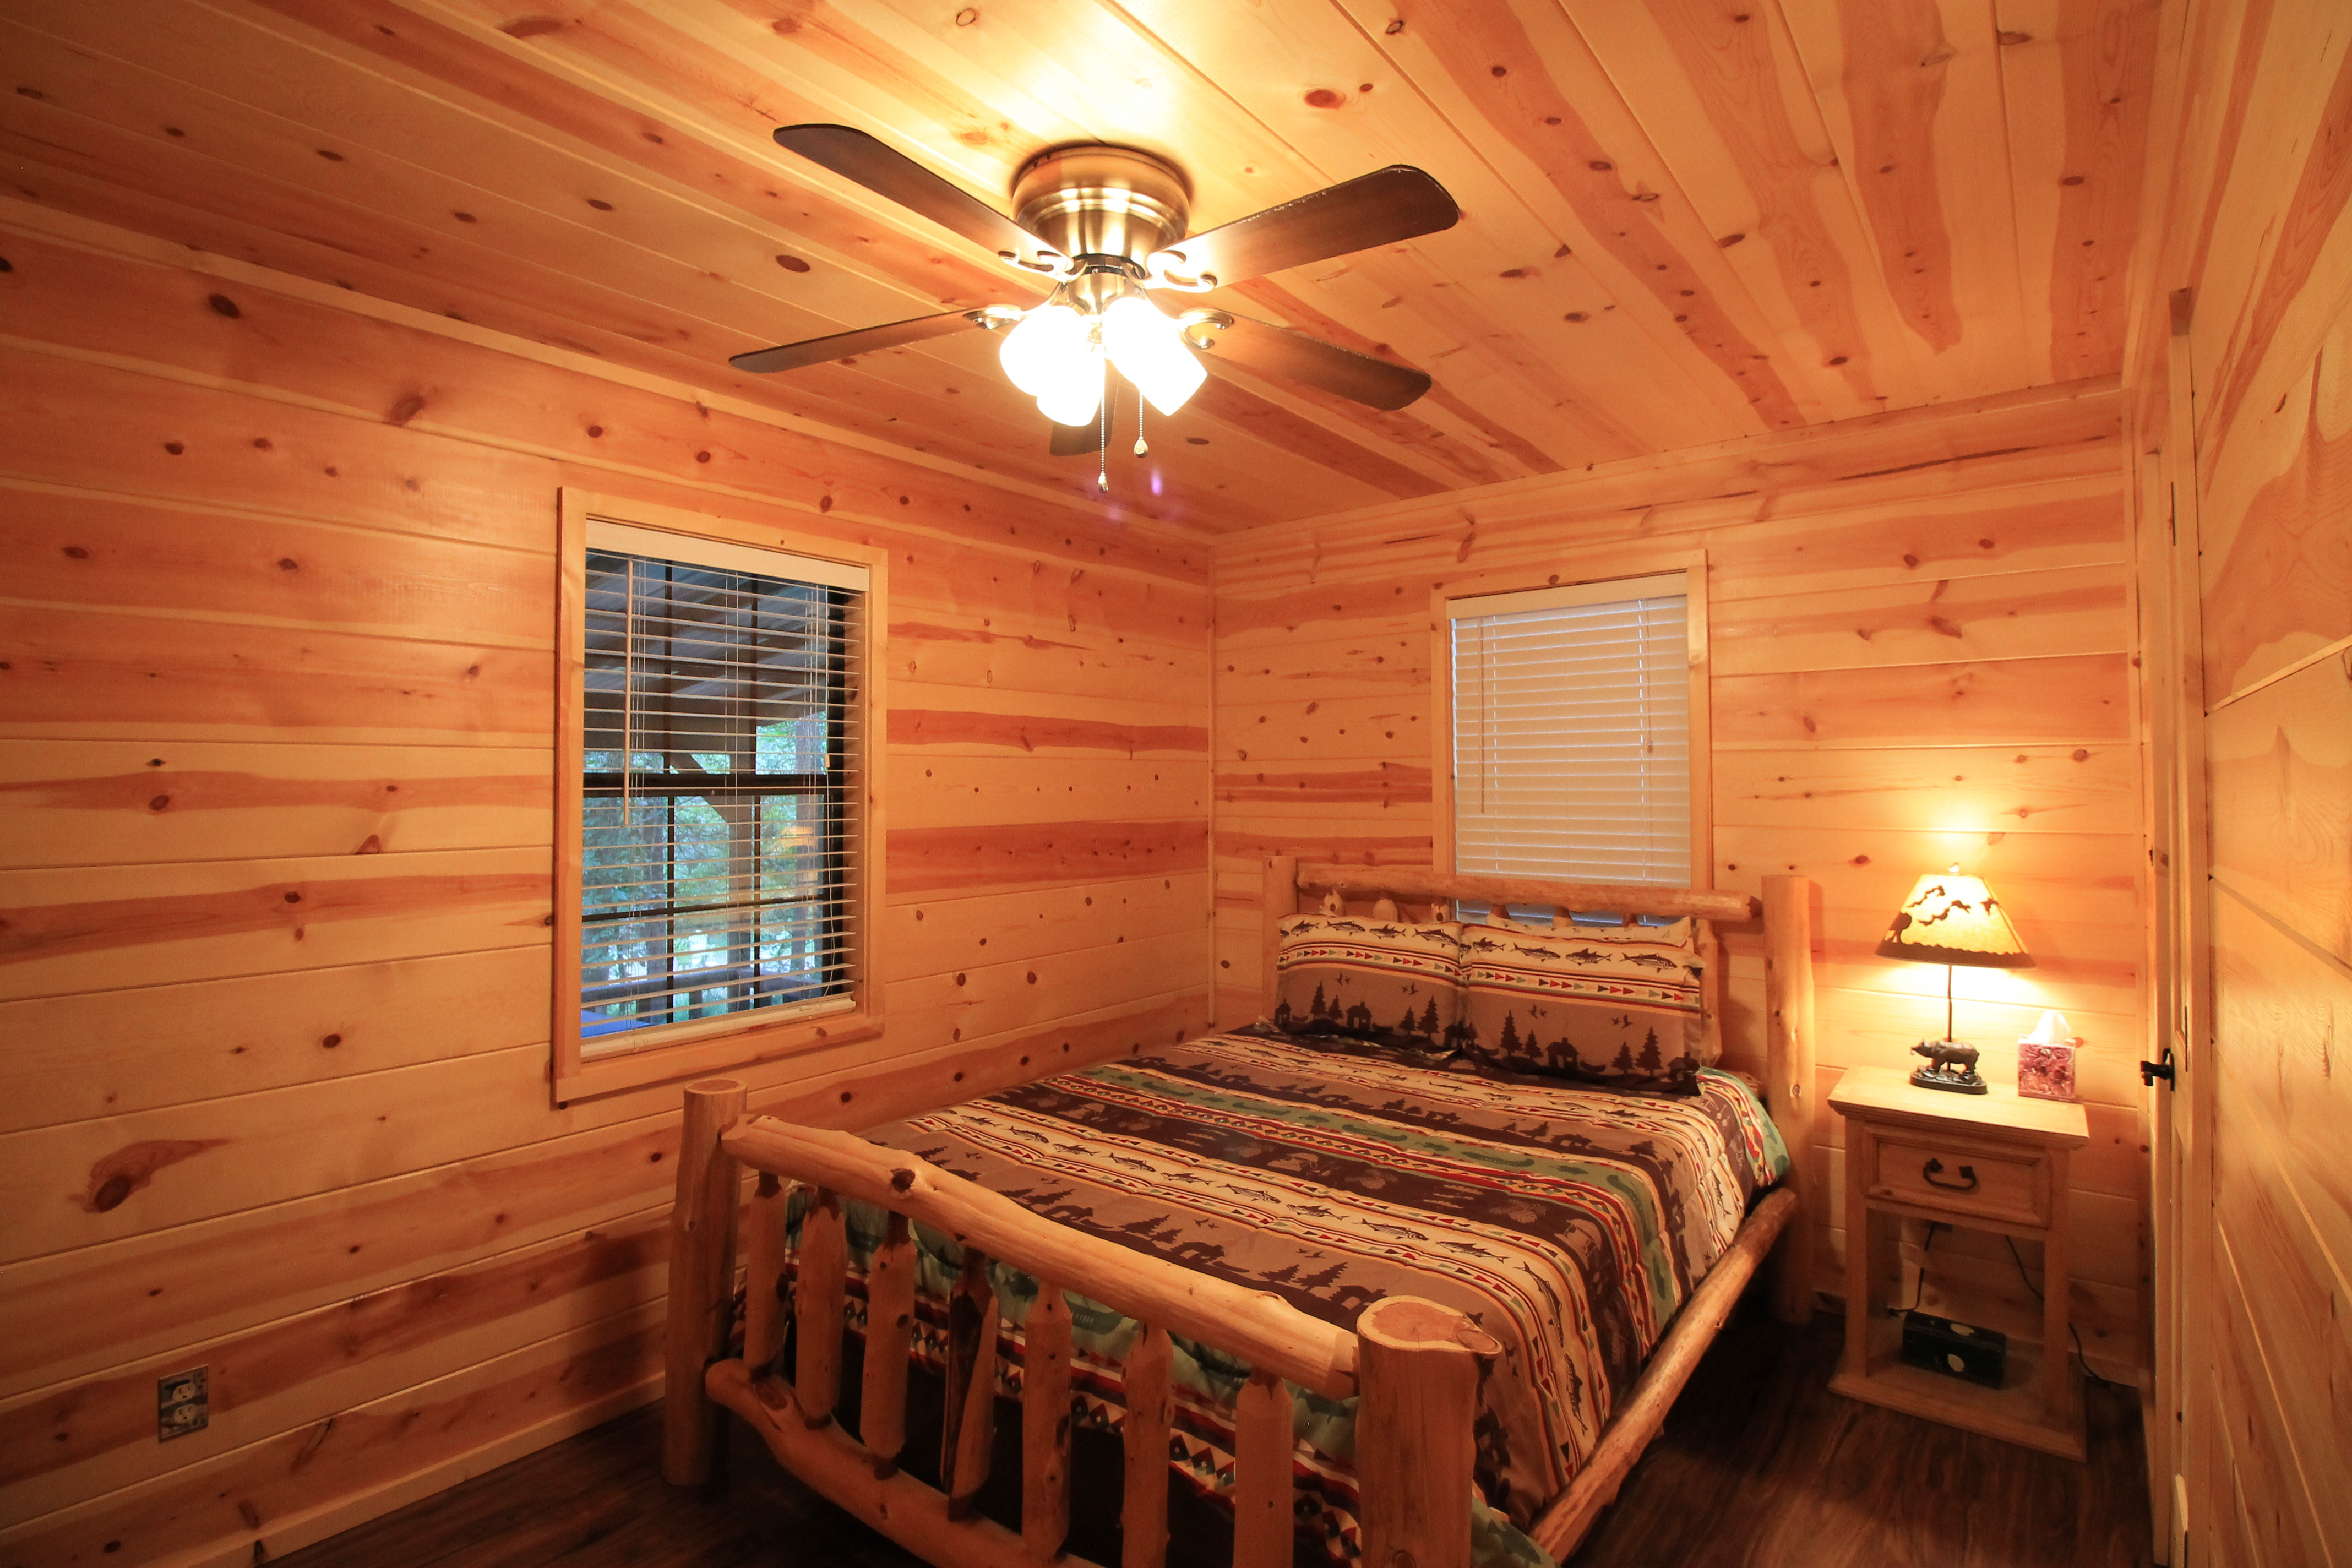 romantic lodging want getaway the mountain or cabin at shot for screen cabins our you honeymoon rentals bear bow and offer beavers bend privacy broken pm your quality intimacy